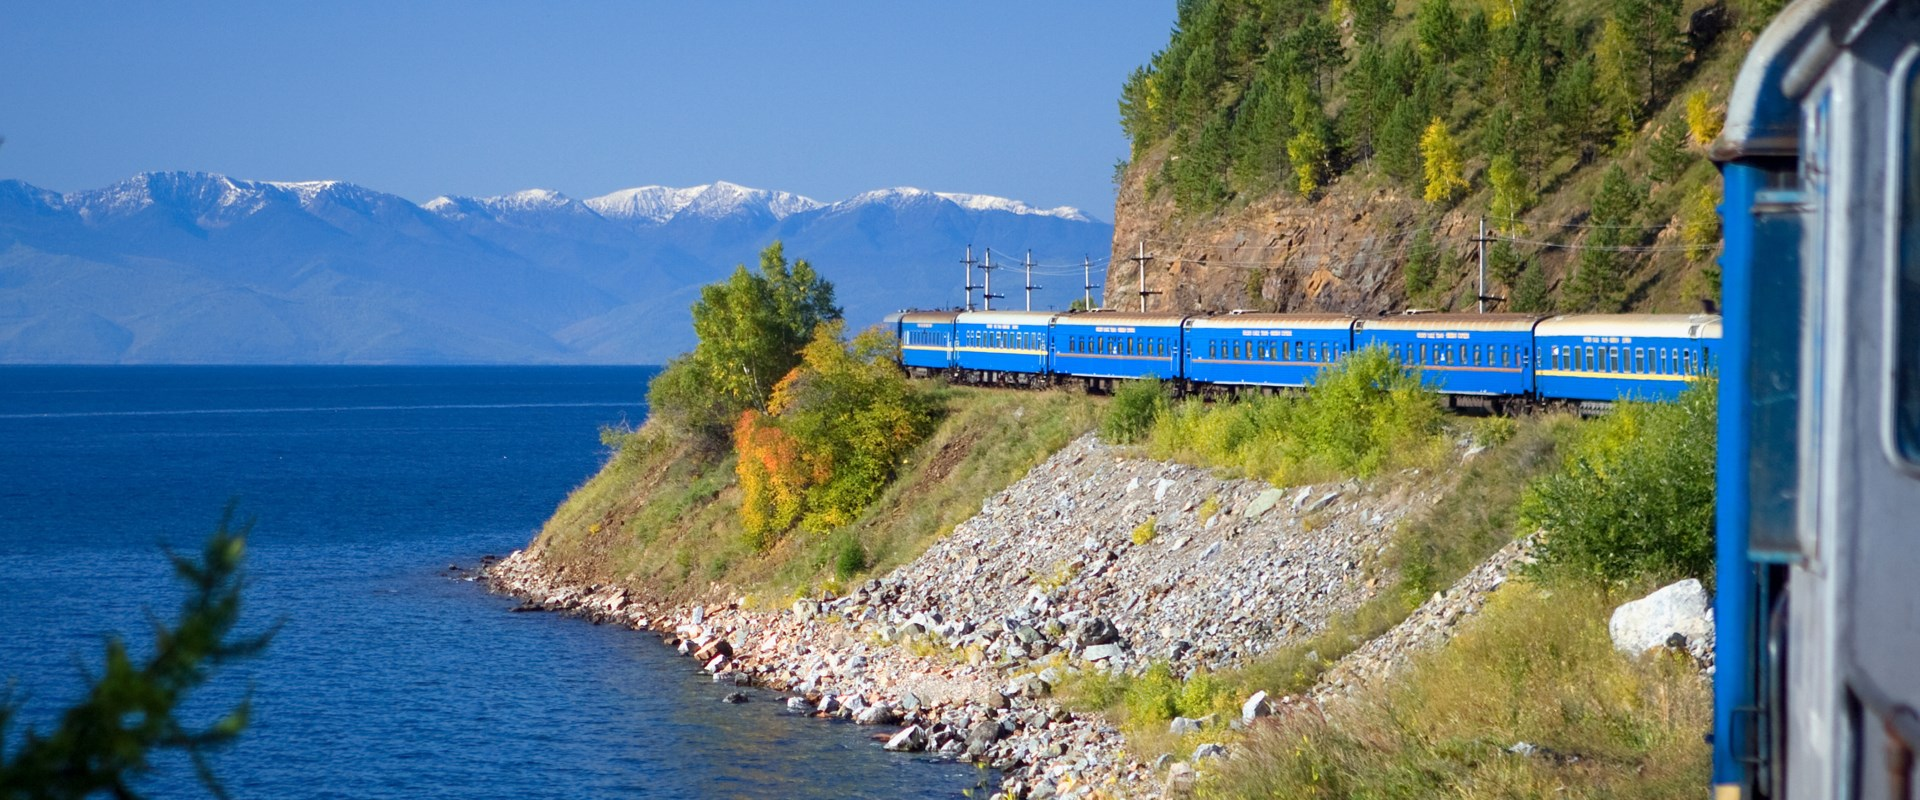 CRUISE   RAIL  A WHOLE NEW WAY TO TRAVEL WITH UNIWORLD